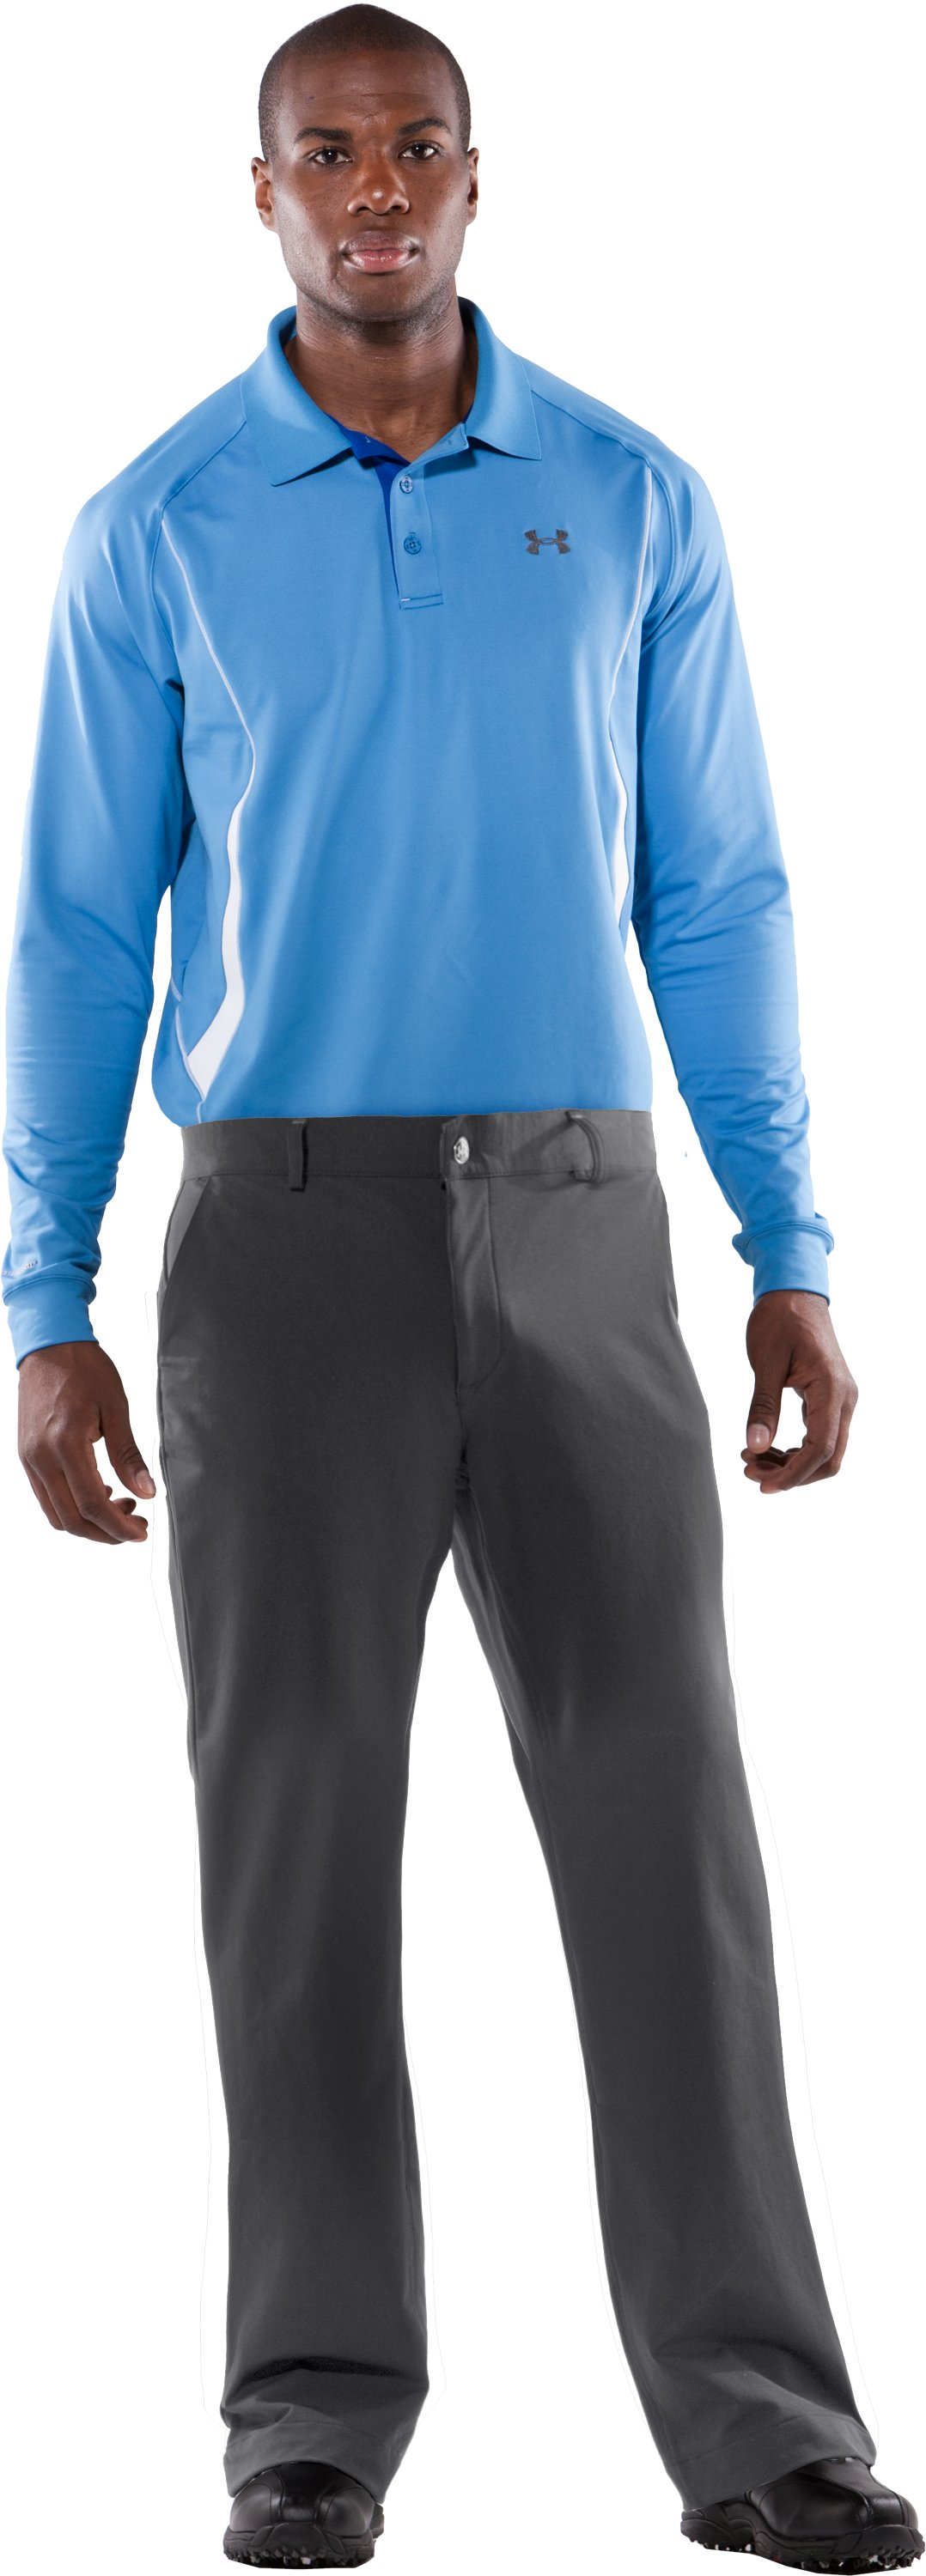 Men's Water-Resistant ColdGear® Golf Pants 3.0, Graphite, zoomed image